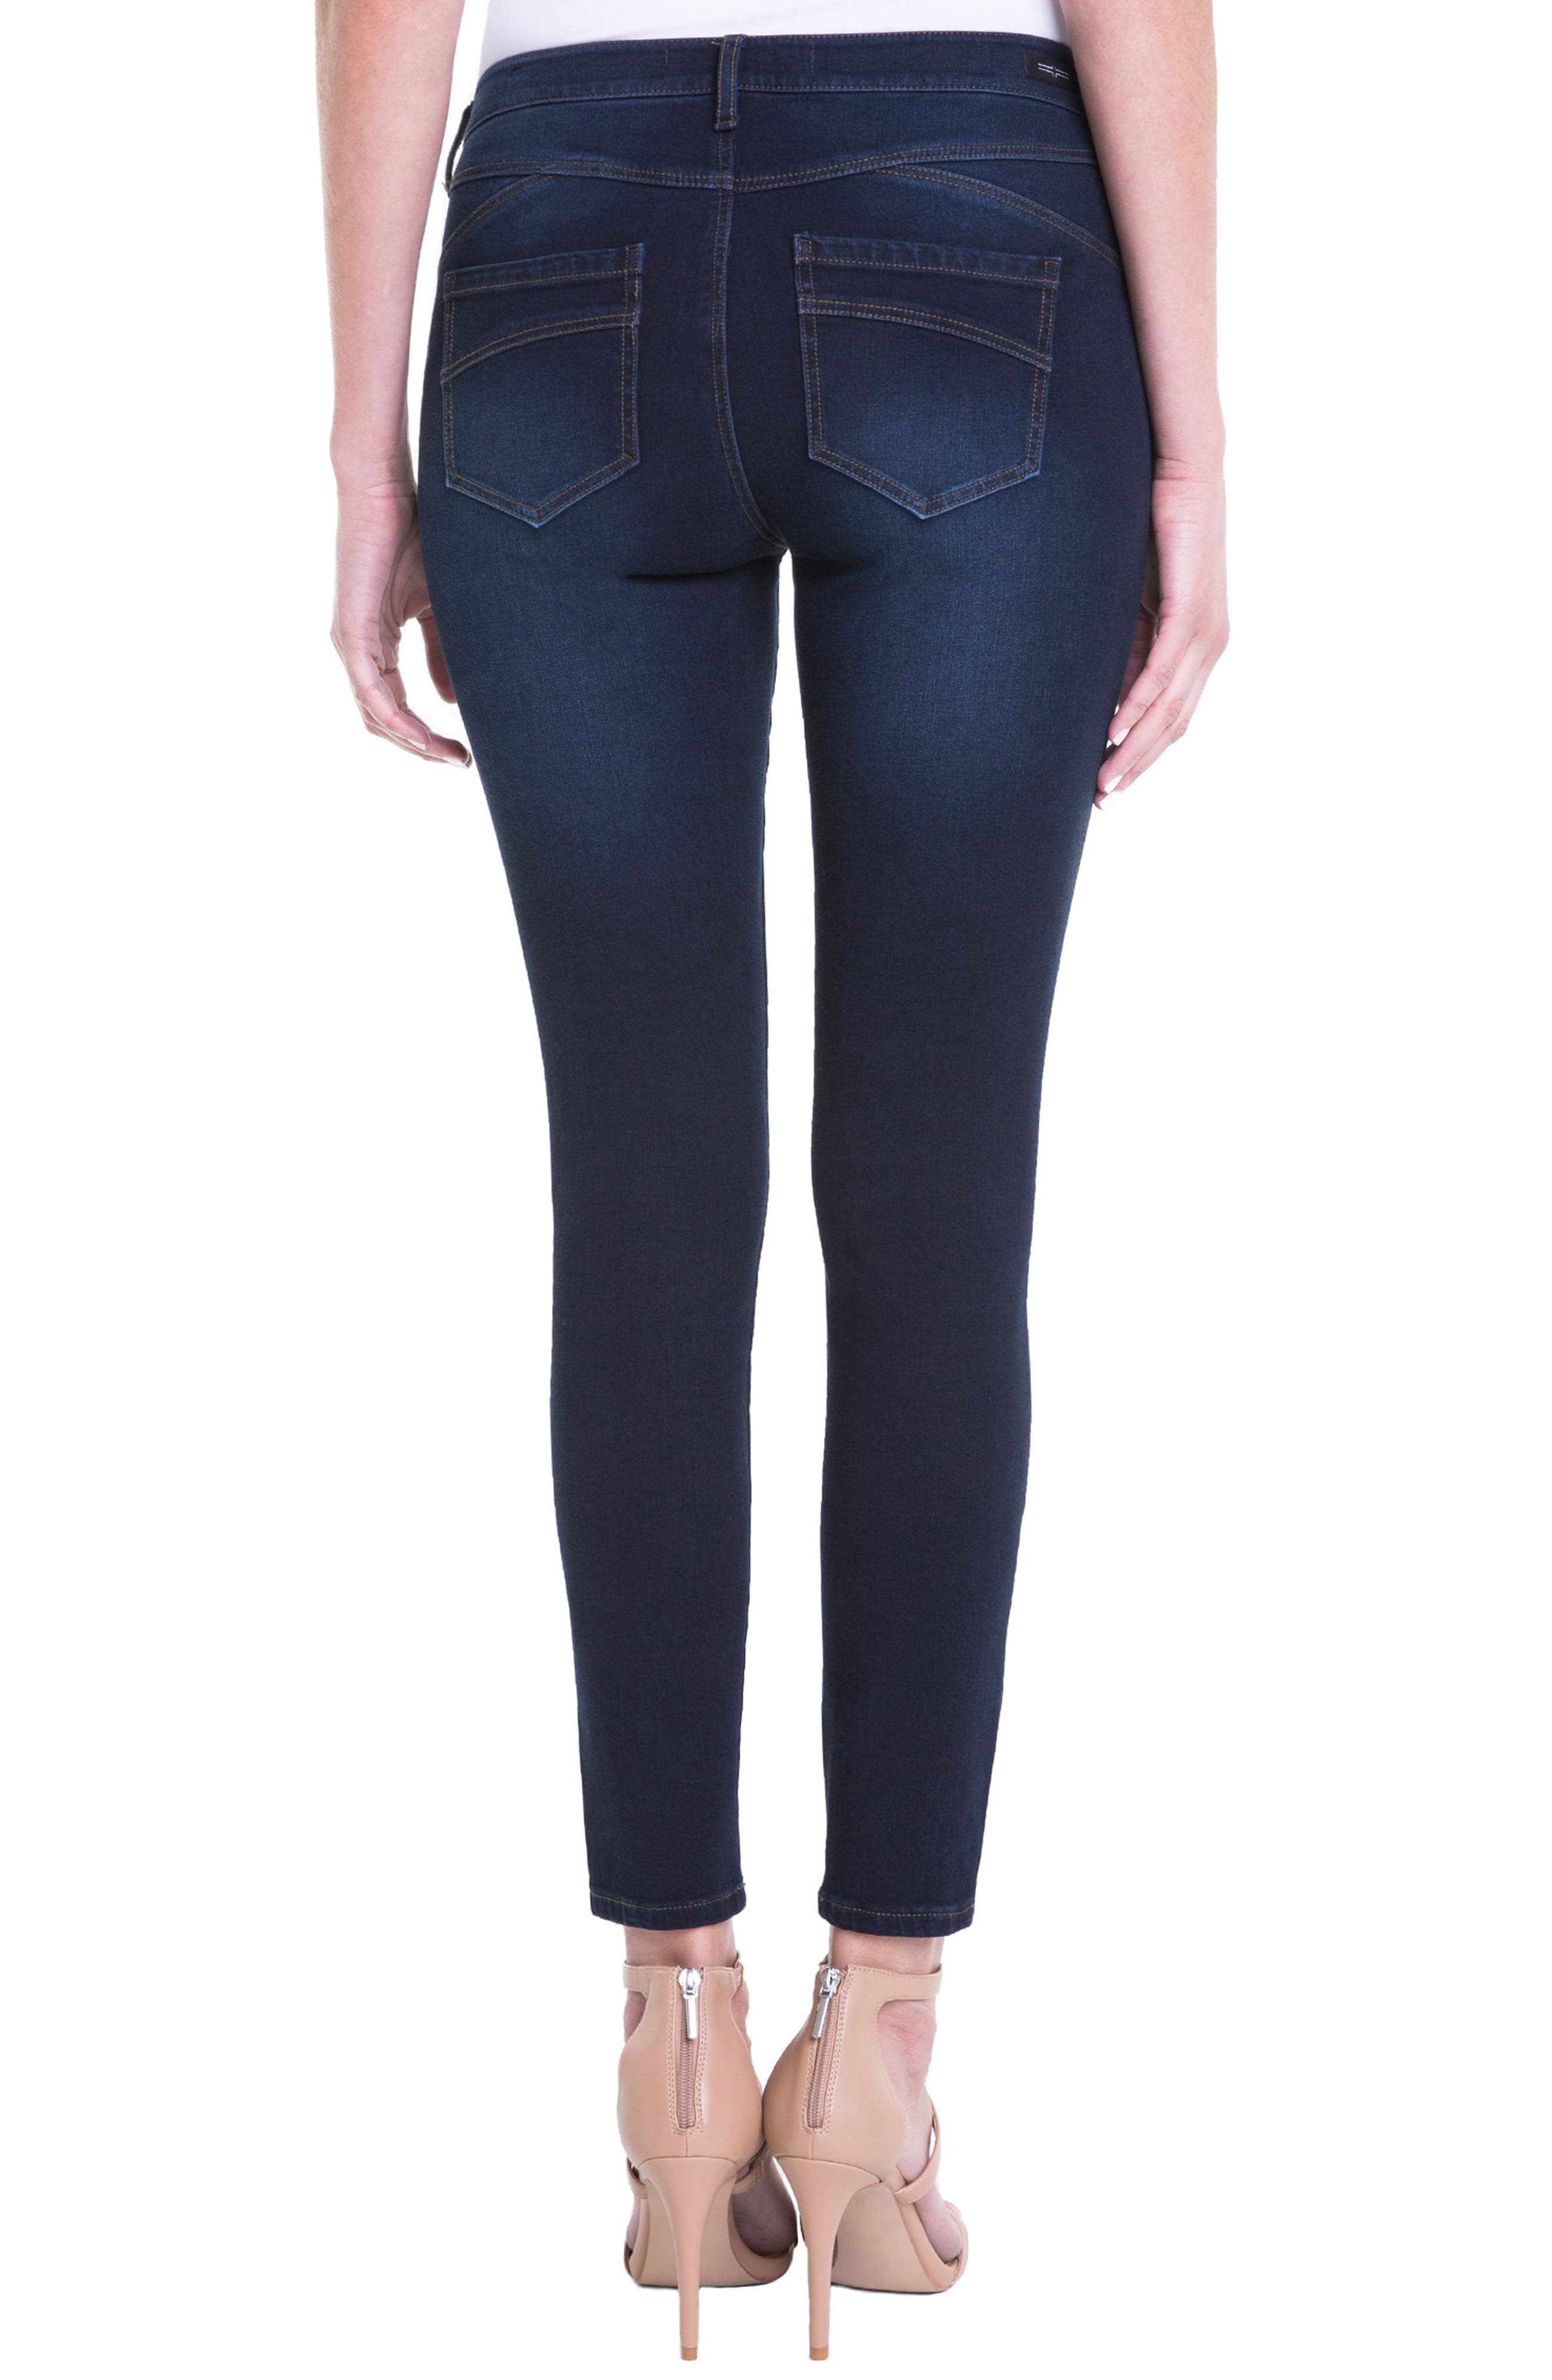 Jeans Company Piper Hugger Lift Sculpt Ankle Skinny Jeans,                             Alternate thumbnail 8, color,